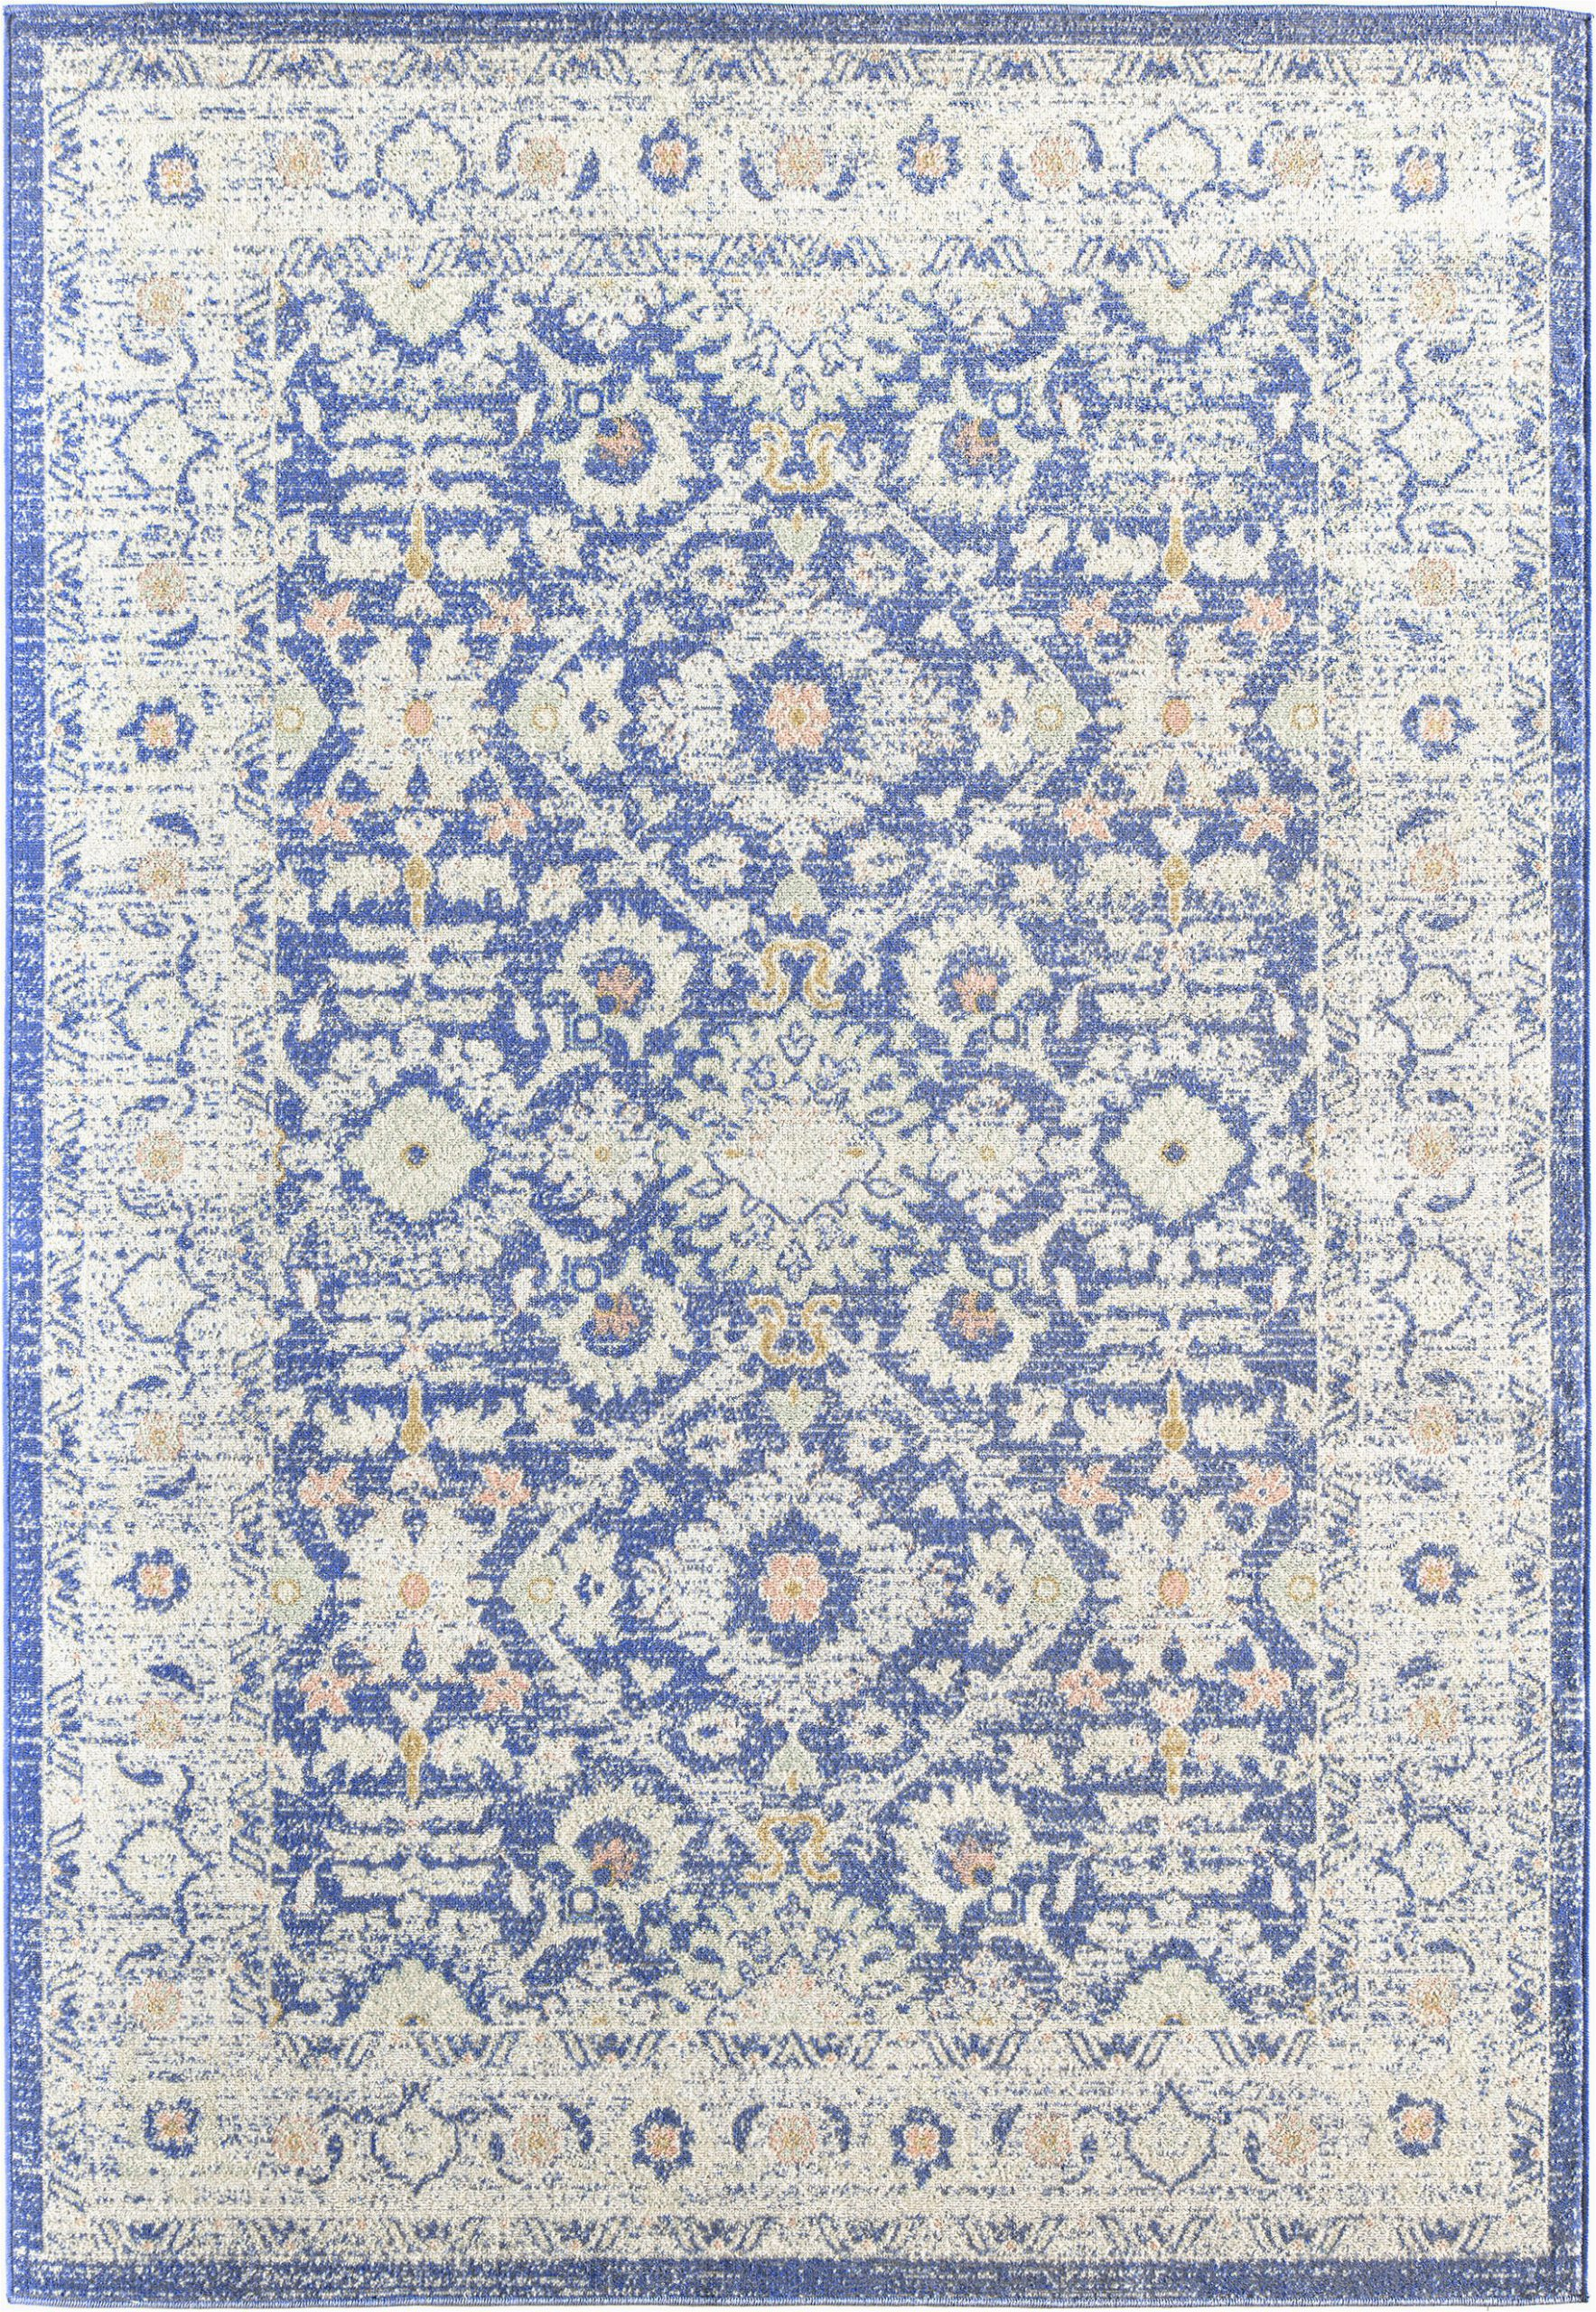 Blue Transitional area Rugs Reva Transitional Blue Gray Indoor Outdoor area Rug